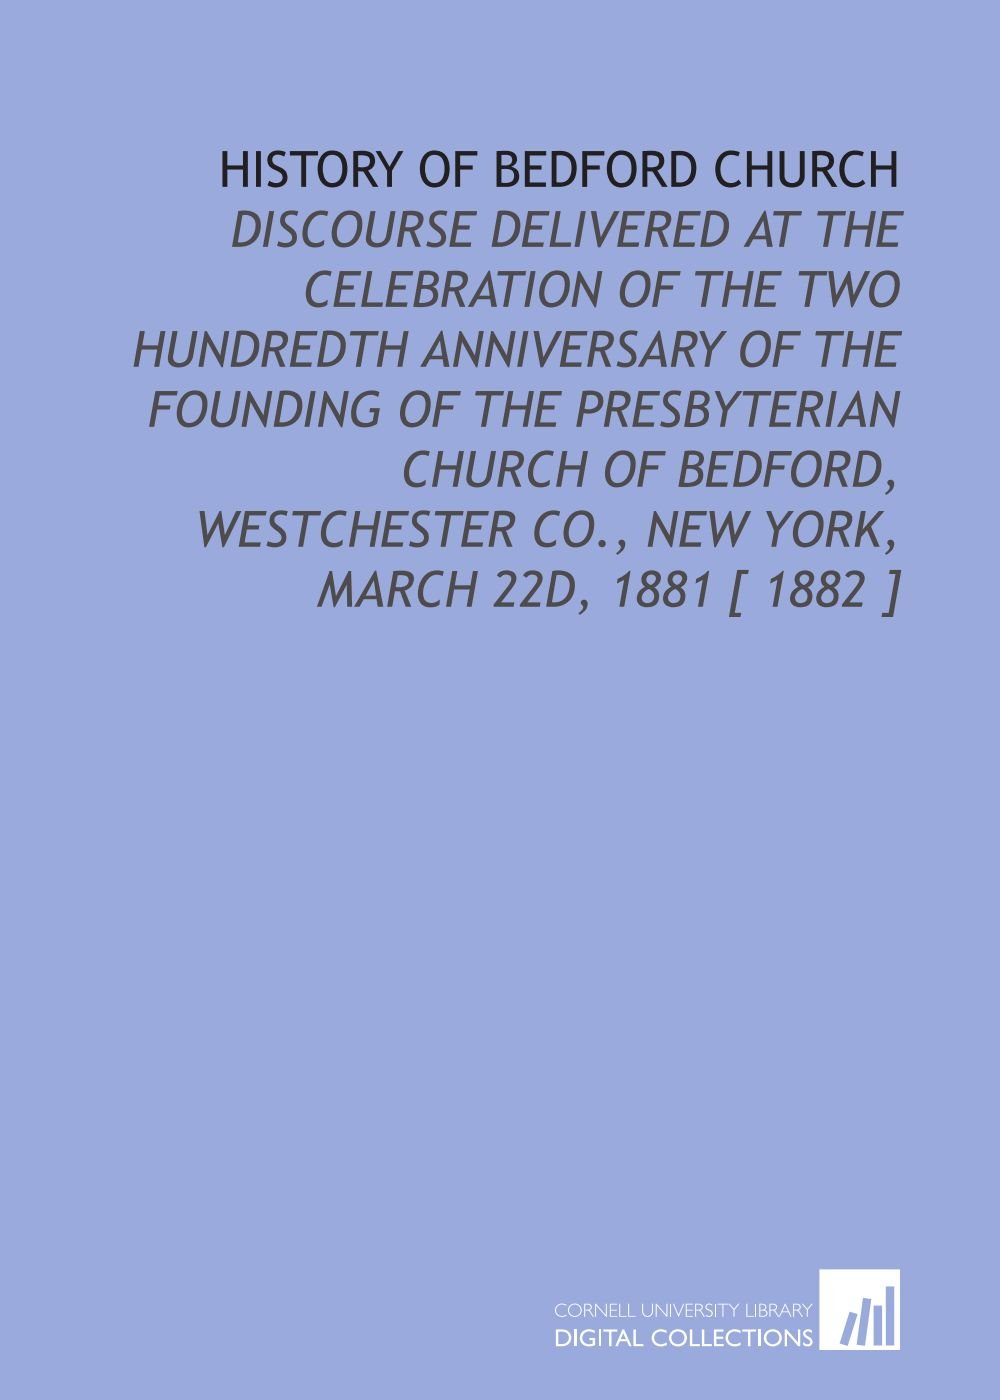 History of Bedford Church: Discourse Delivered at the Celebration of the Two Hundredth Anniversary of the Founding of the Presbyterian Church of ... Co., New York, March 22d, 1881 [ 1882 ] pdf epub